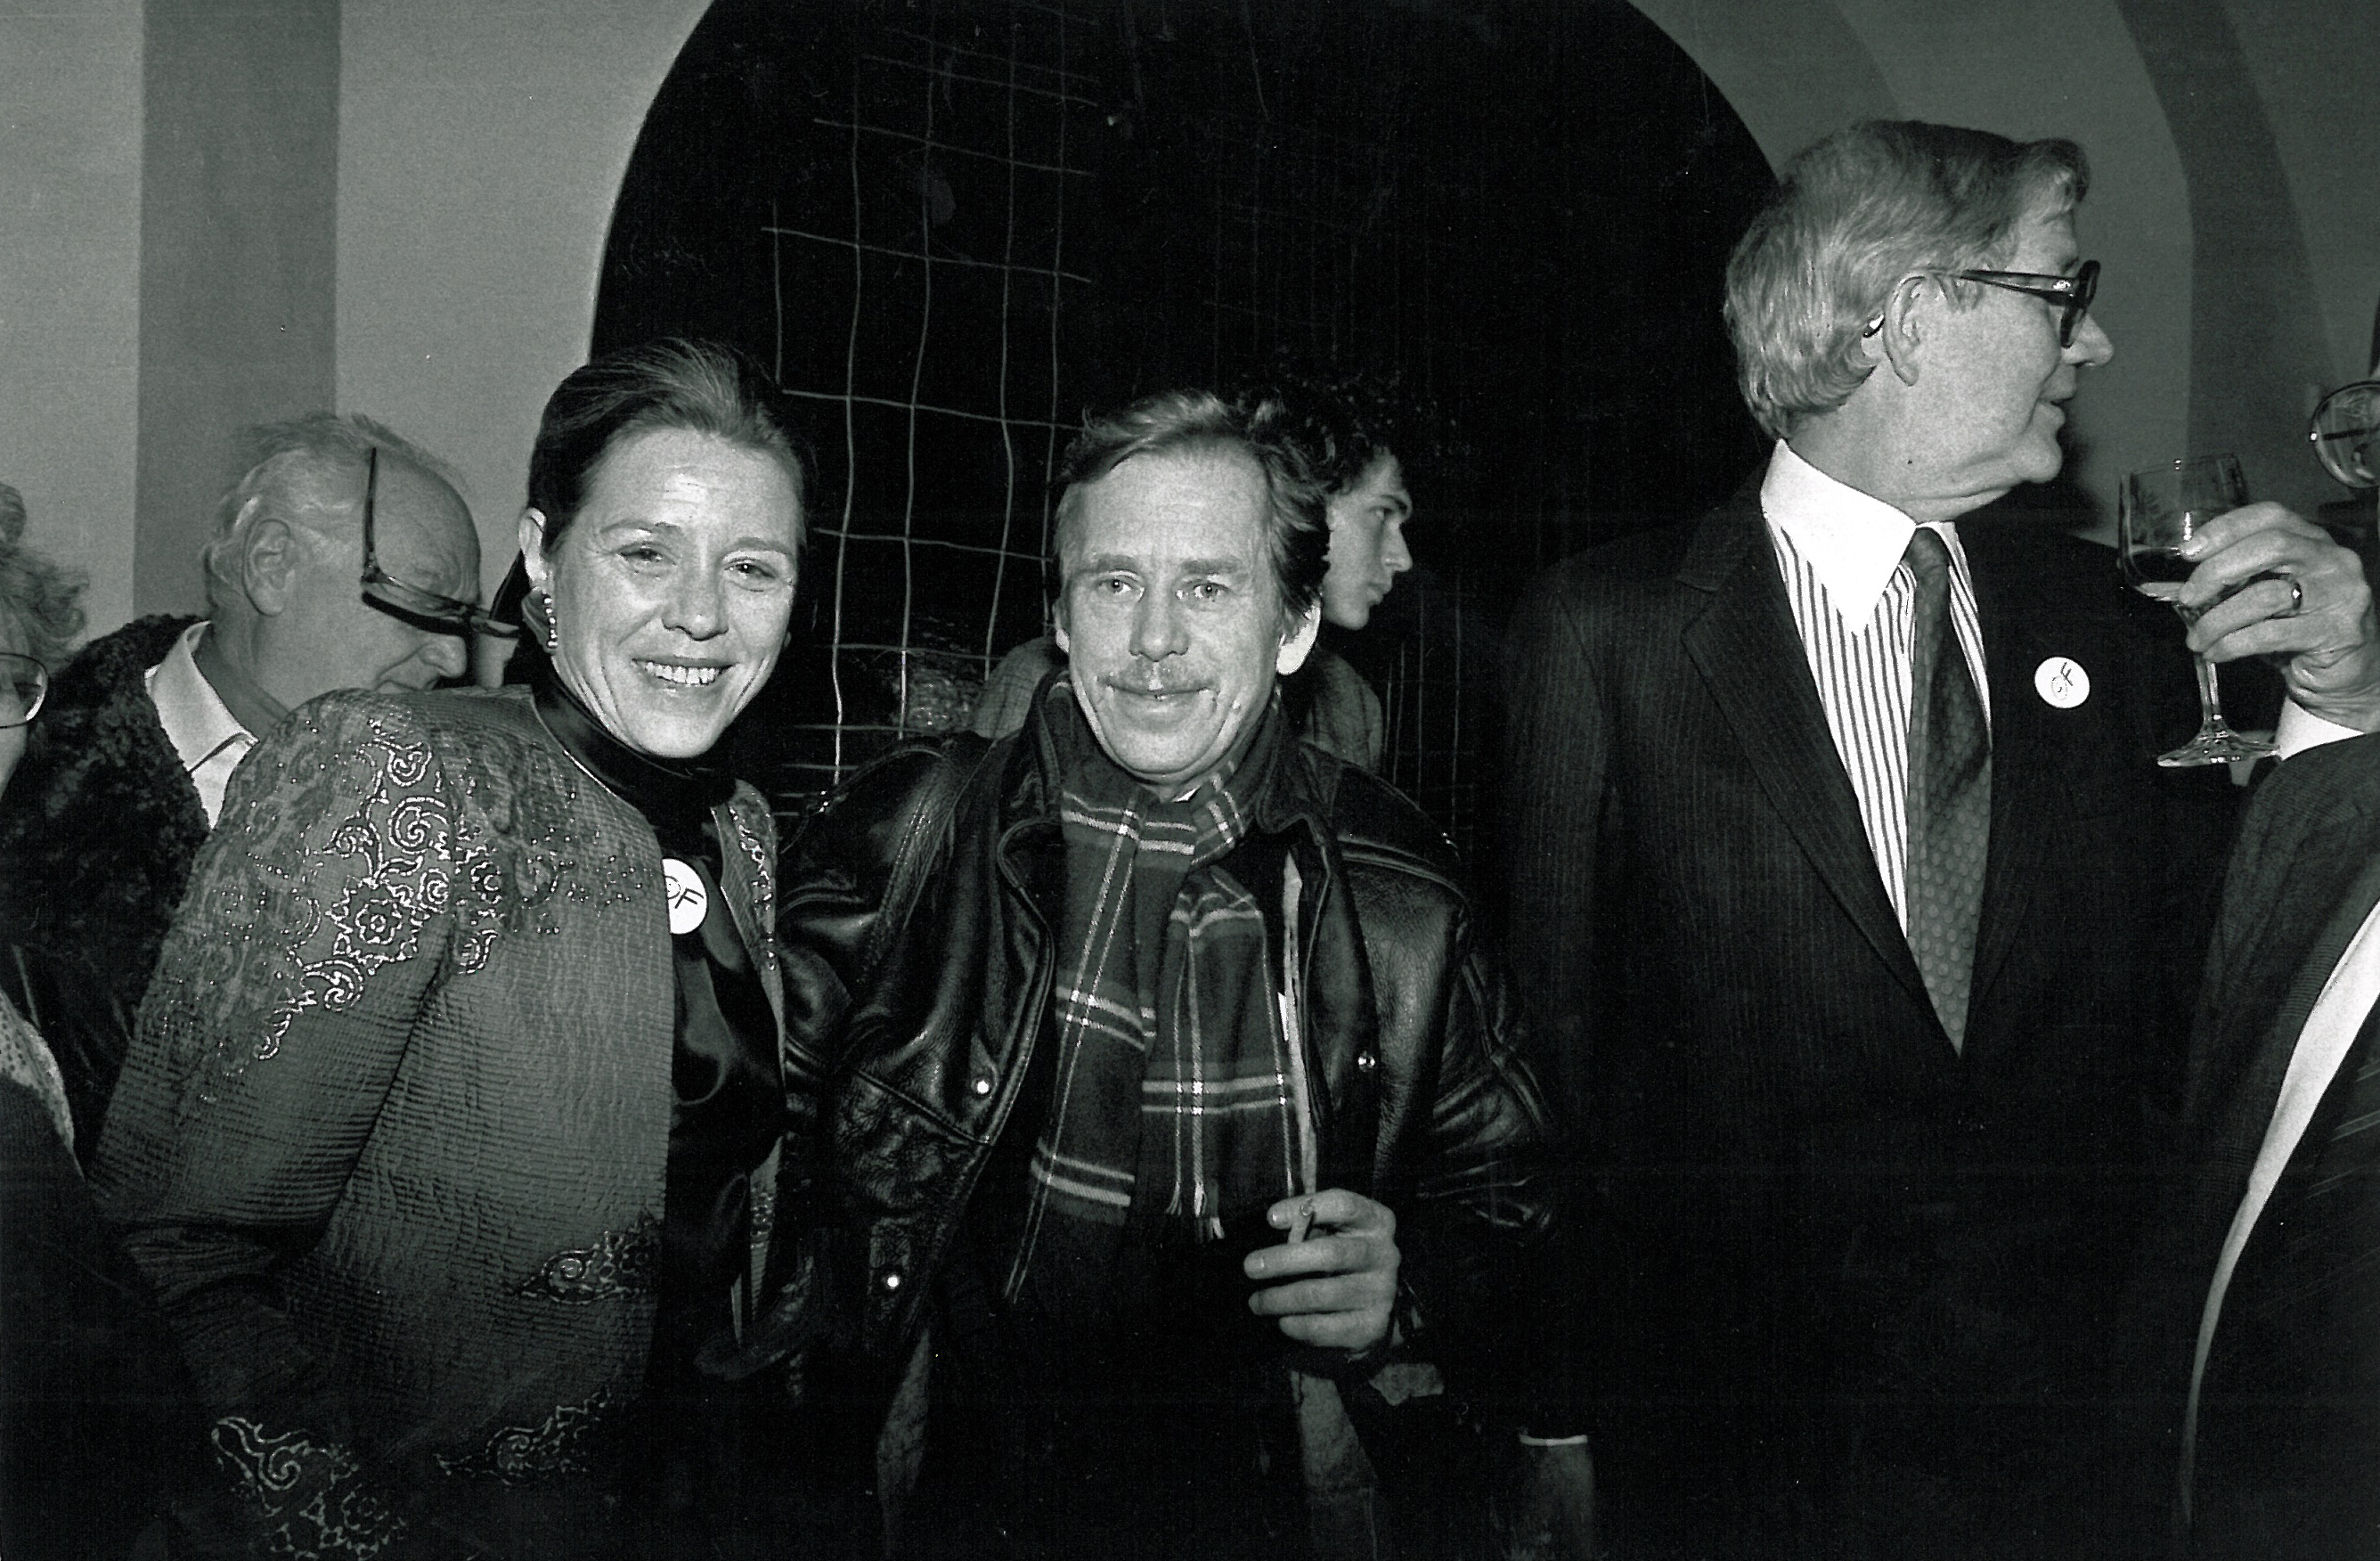 Vaclav Havel with William and Wendy Luers, Restaurant U sedmi andelu, Prague, December 1989